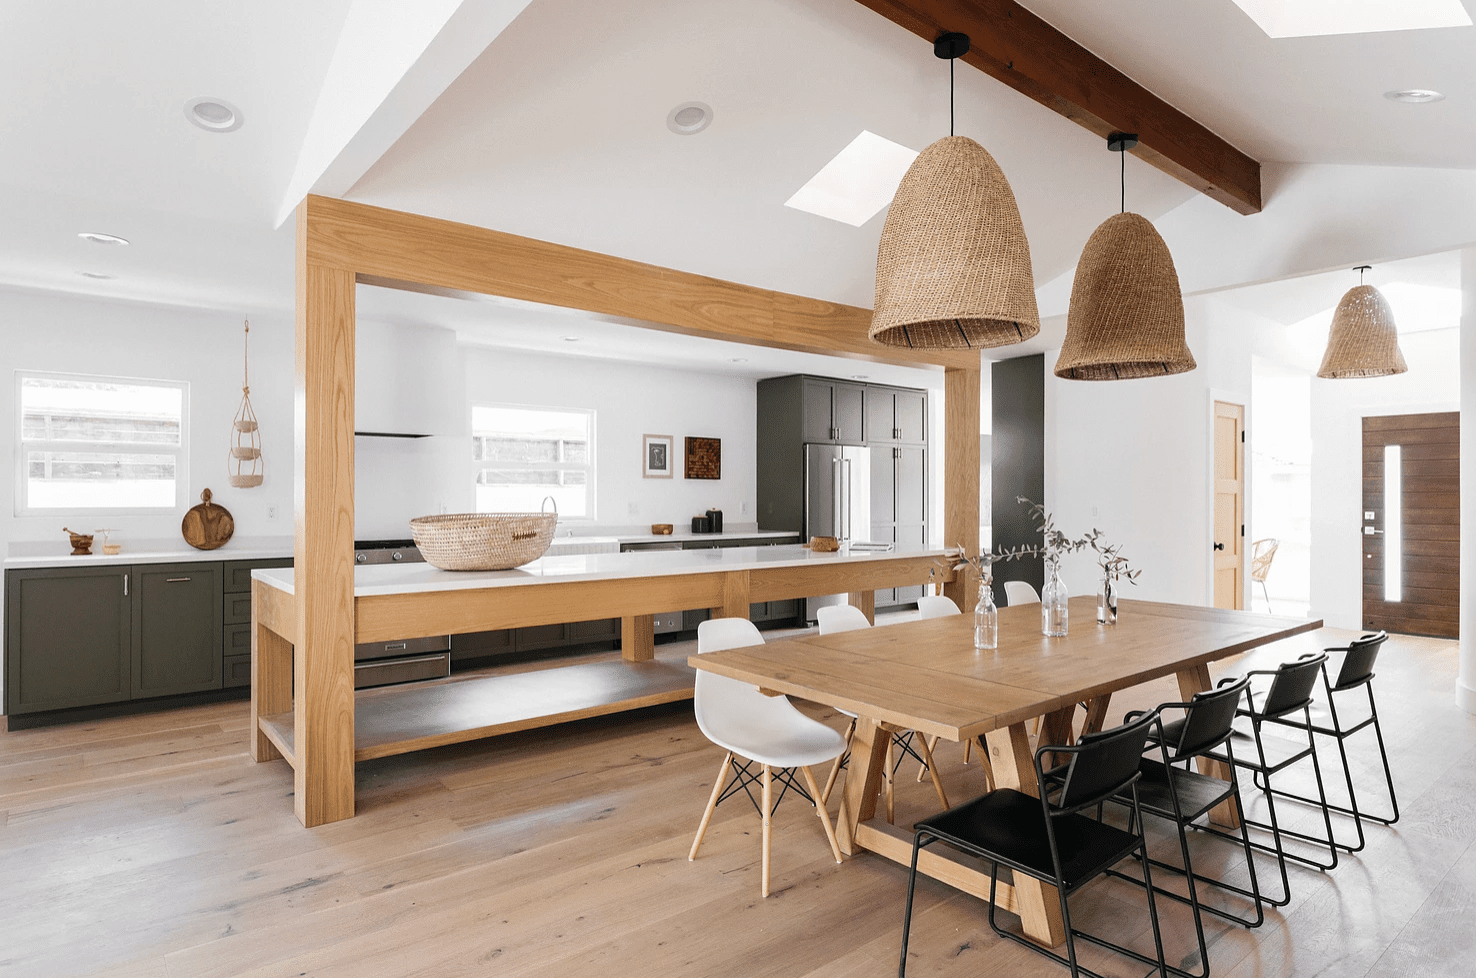 An open-concept kitchen with a wood panel-lined bar